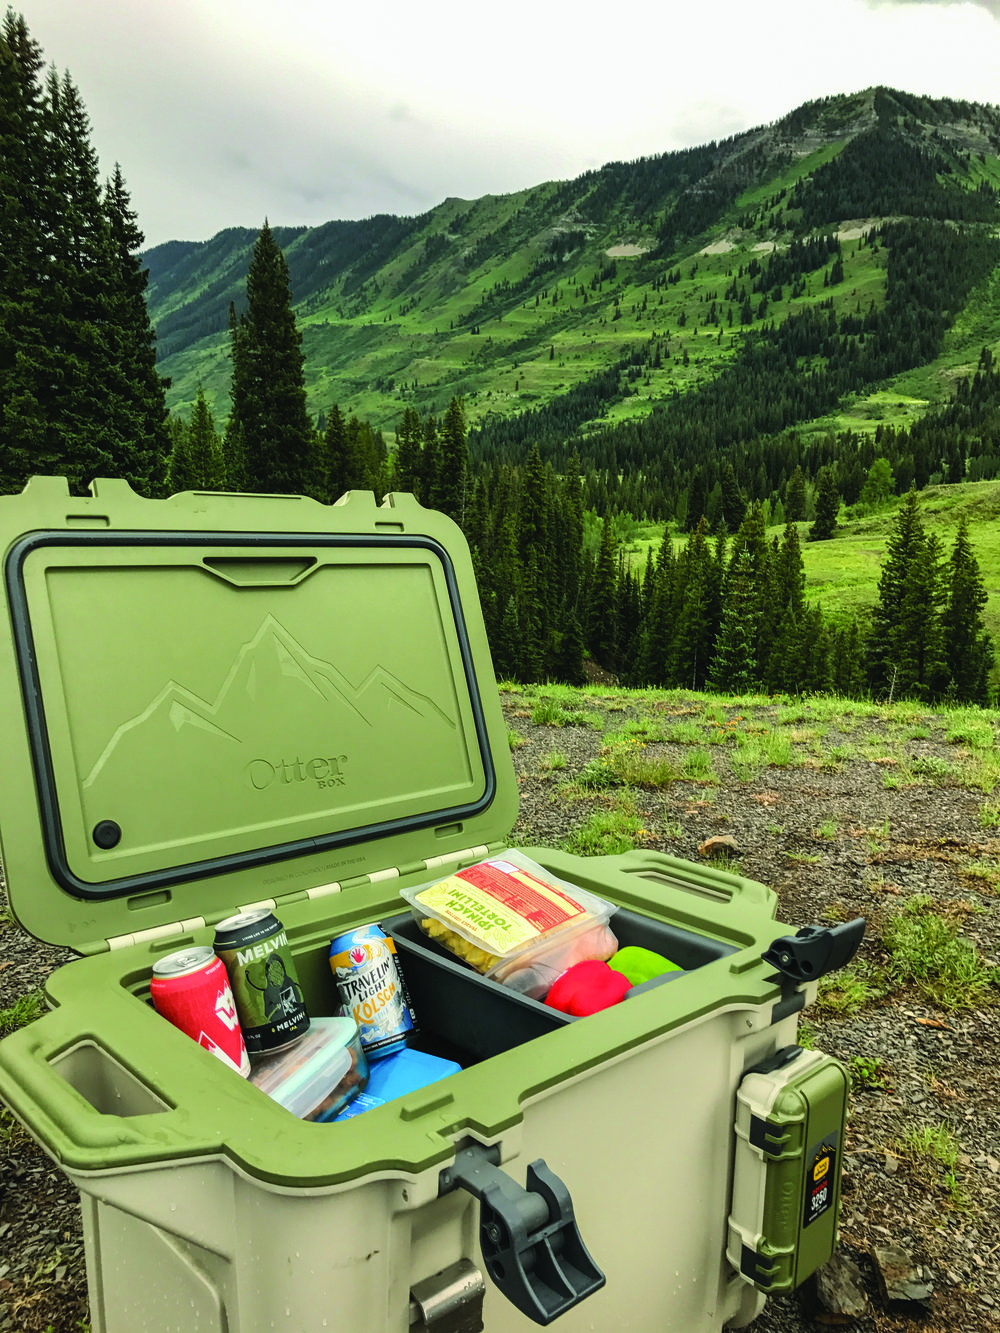 don't be caught off guard in the wilderness: the Otterbox Venture Cooler will keep beer and food cold for days on end.